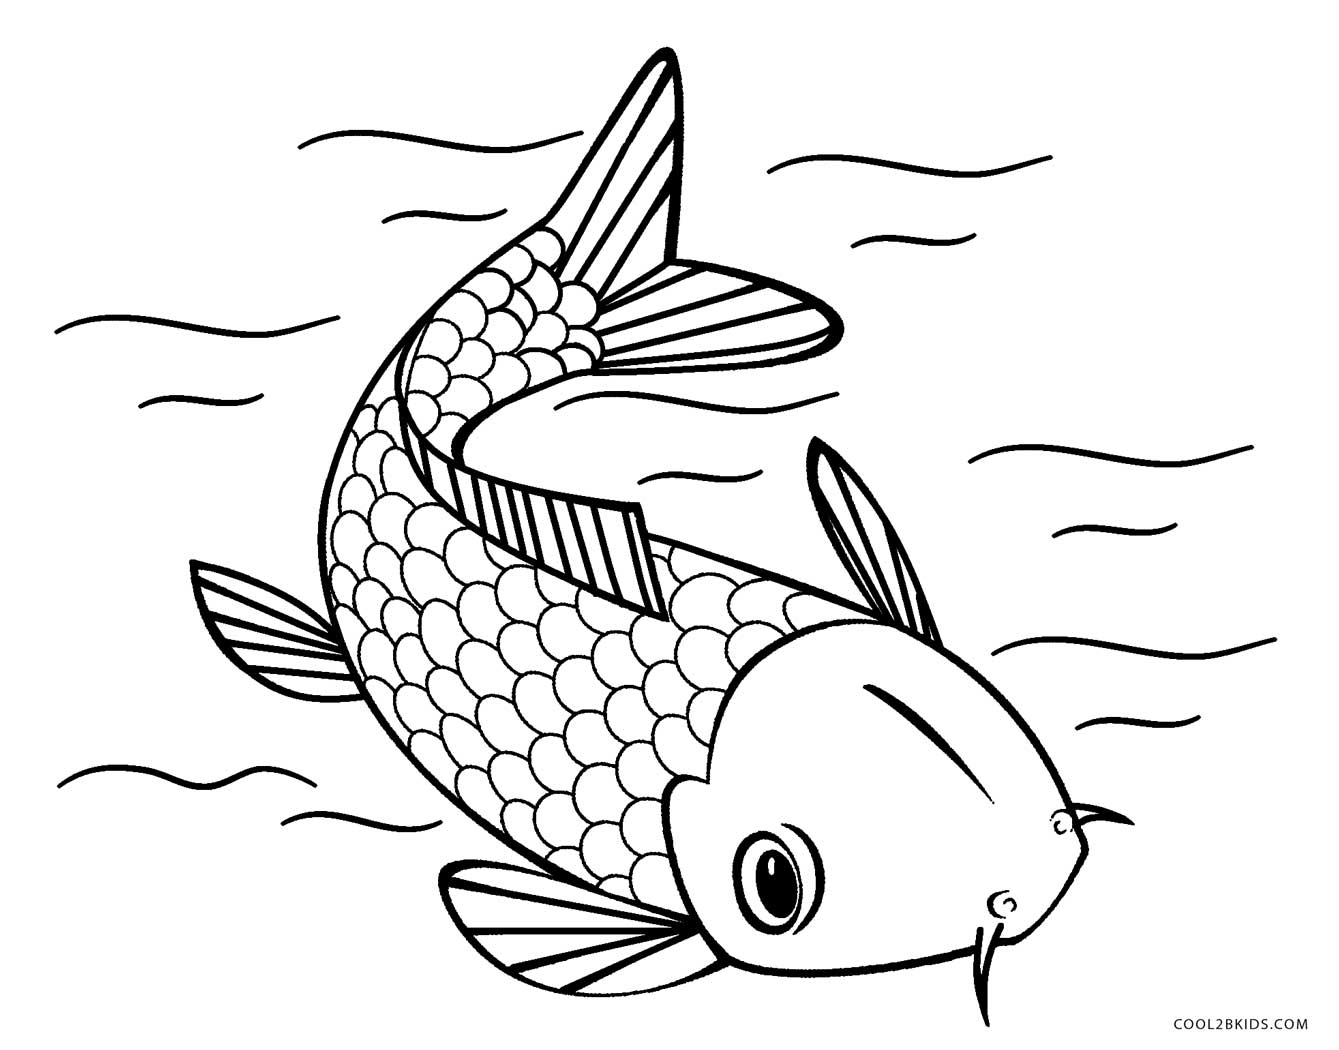 It's just a picture of Tactueux Free Printable Fish